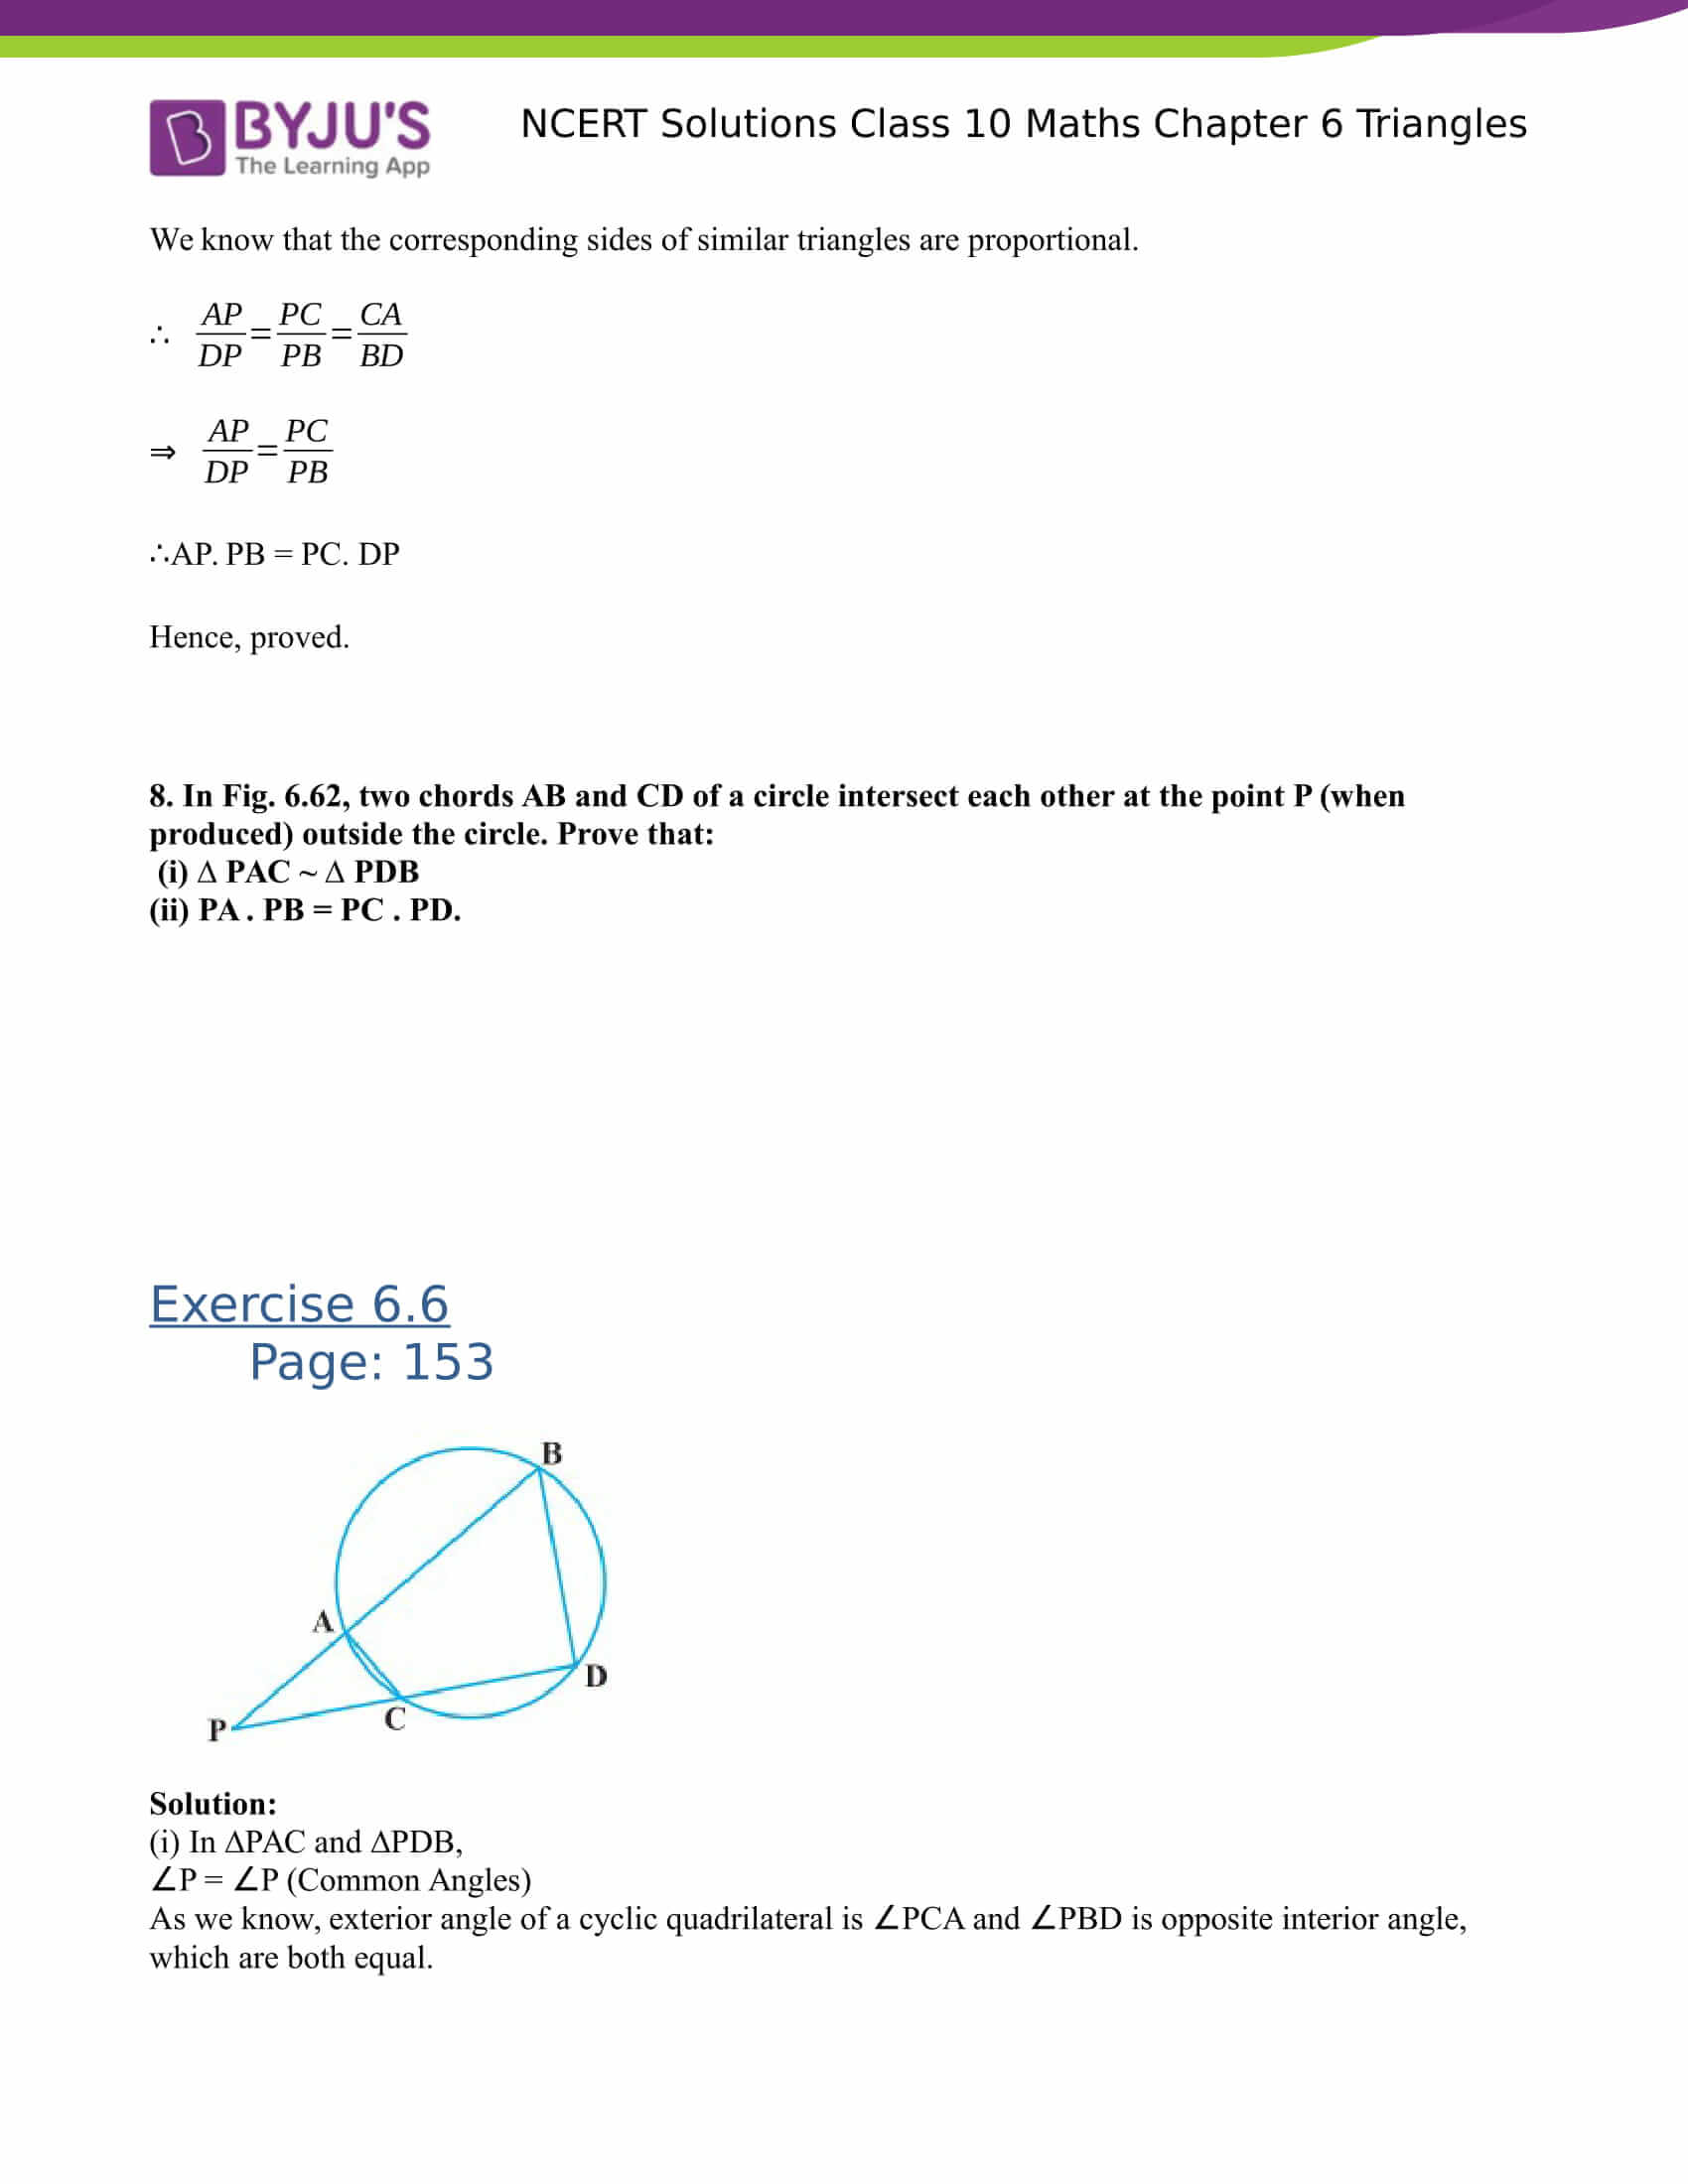 NCERT Solutions for class 10 Maths Chapter 6 Triangles Part 53